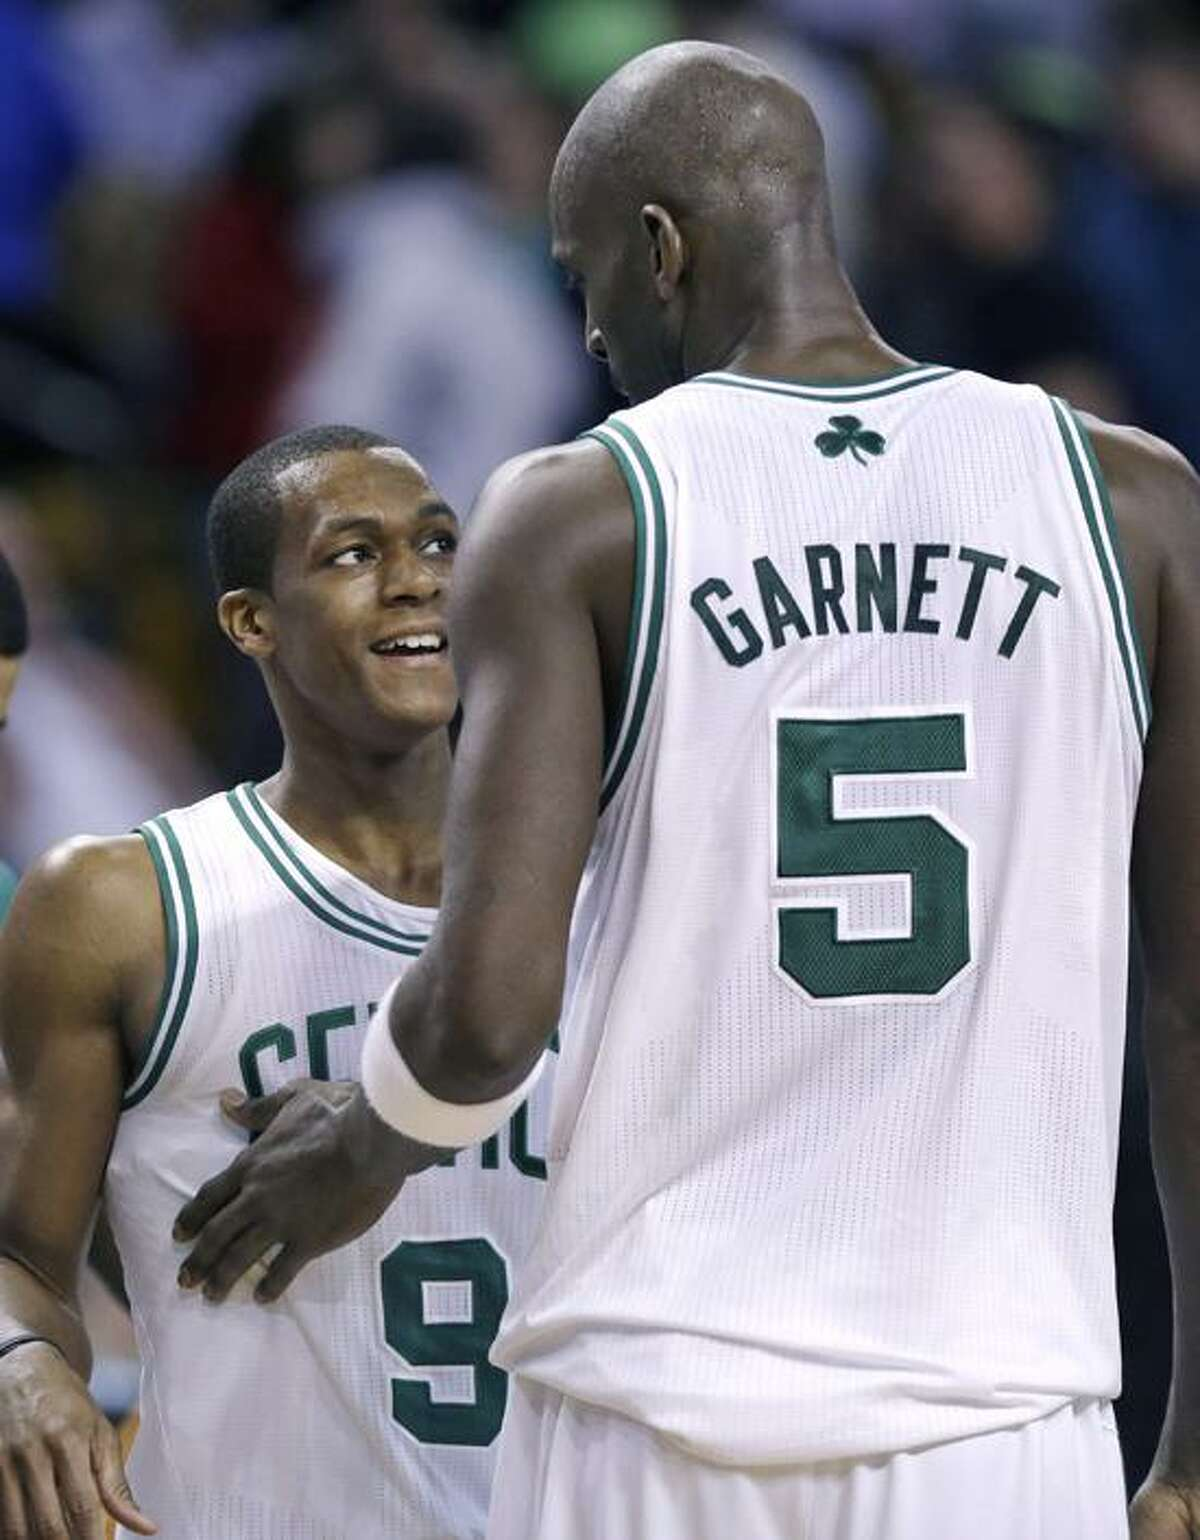 Boston Celtics forward Kevin Garnett (5) pats guard Rajon Rondo (9) on the chest near the end of an NBA basketball game against the Phoenix Suns in Boston, Wednesday, Jan. 9, 2013. The Celtics won 87-79. (AP Photo/Elise Amendola)